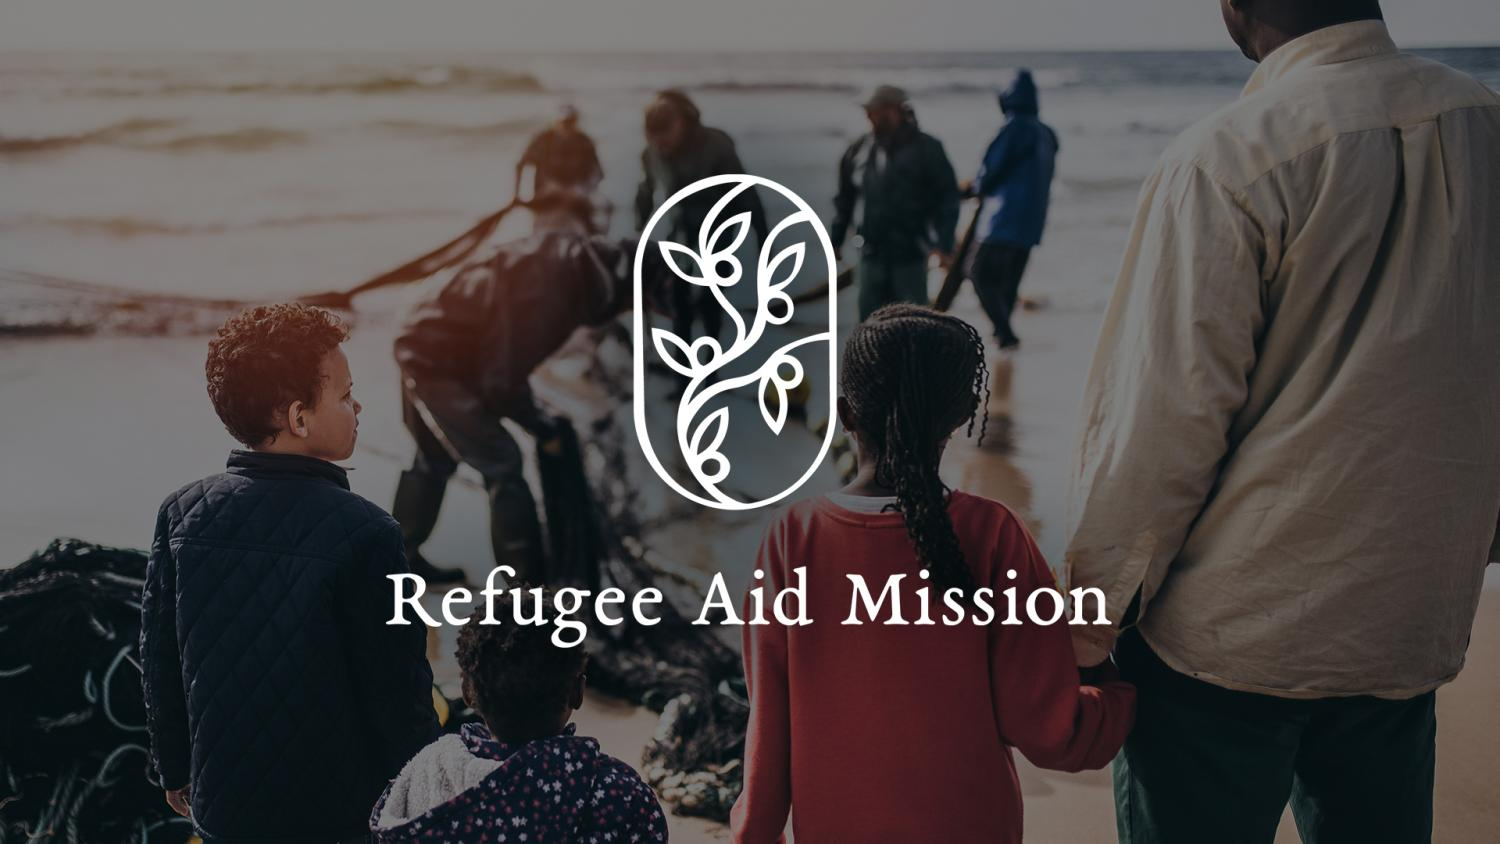 Refugee Aid Mission